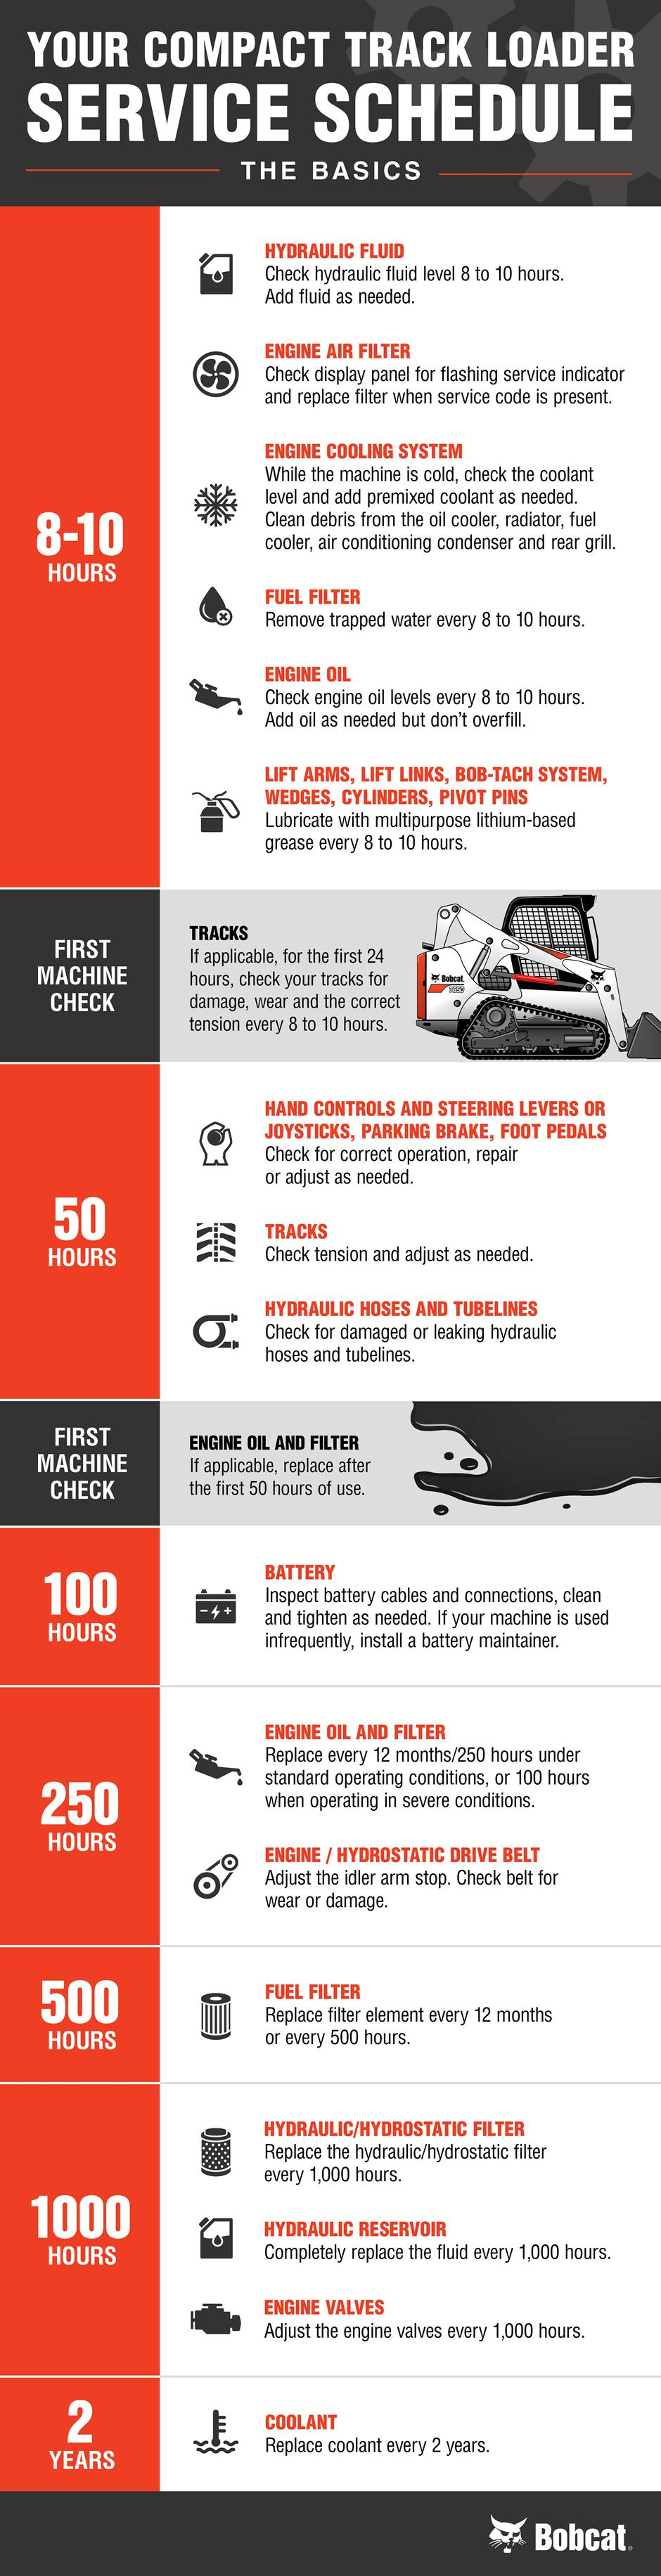 Infographic of Bobcat compact track loader service schedule